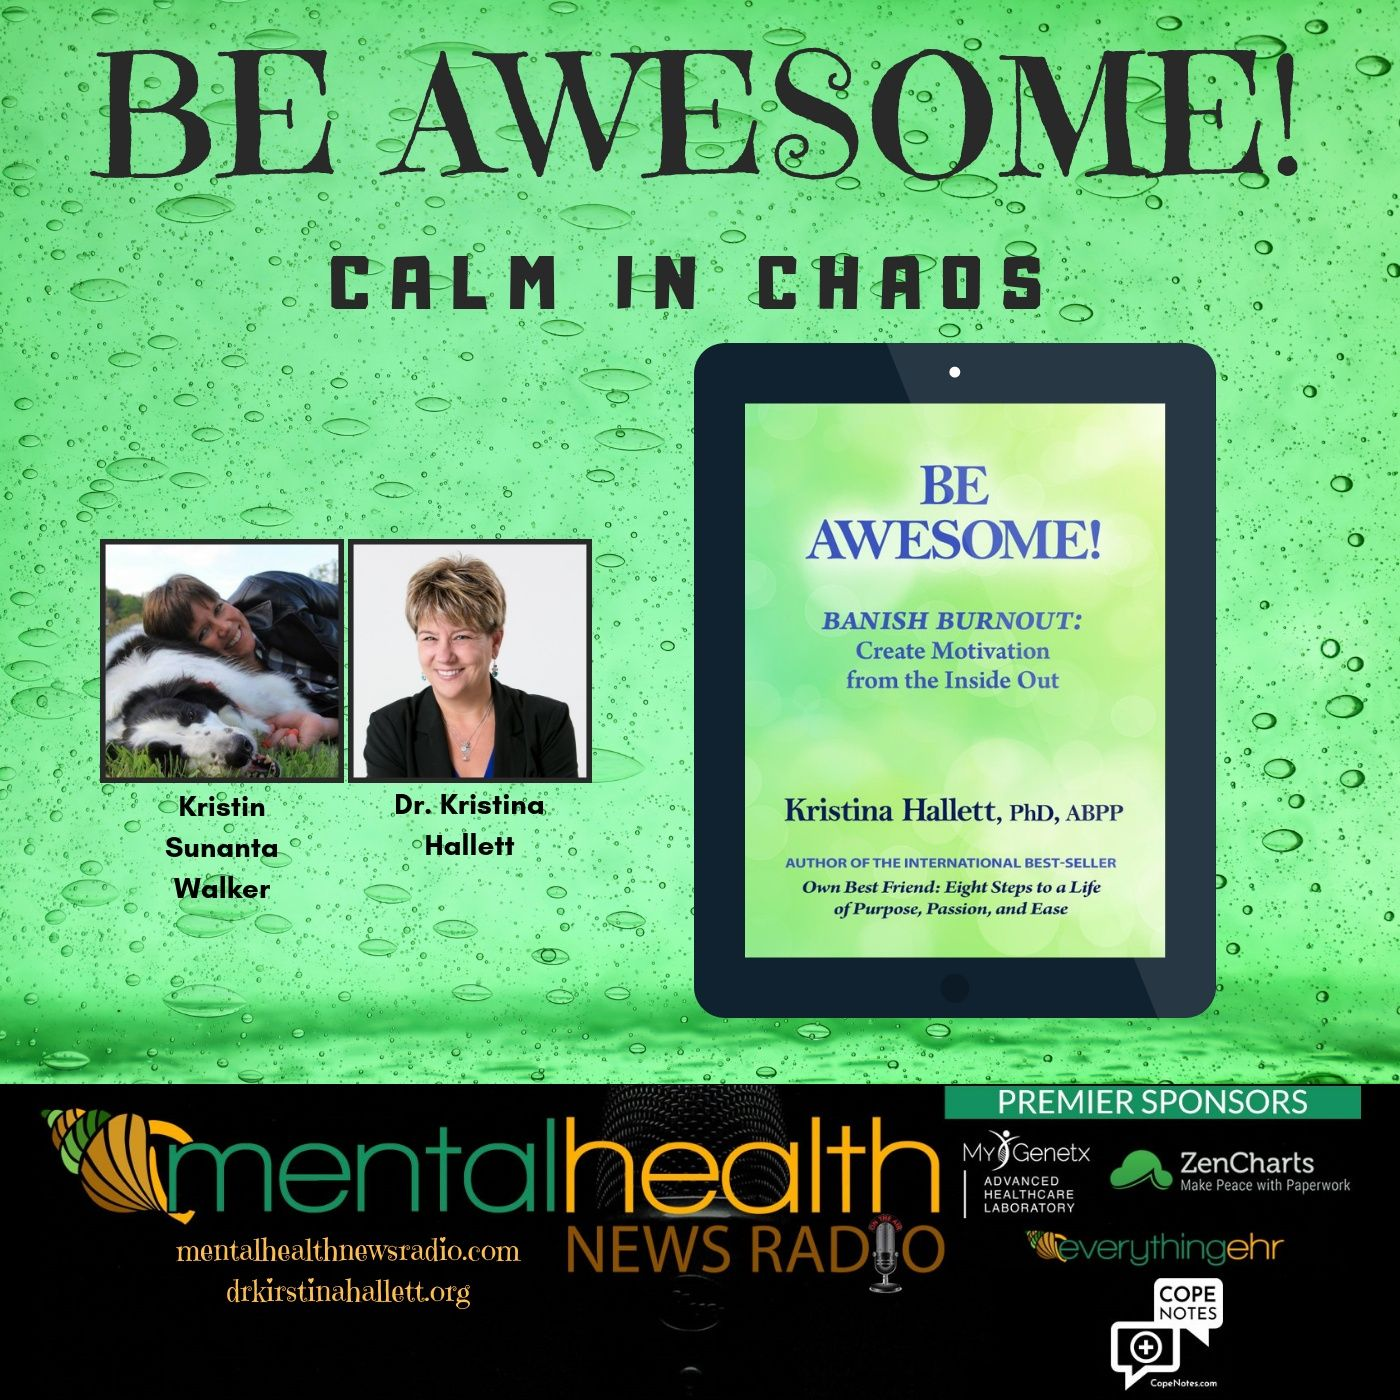 Mental Health News Radio - Be Awesome: Calm In Chaos with Dr. Kristina Hallett